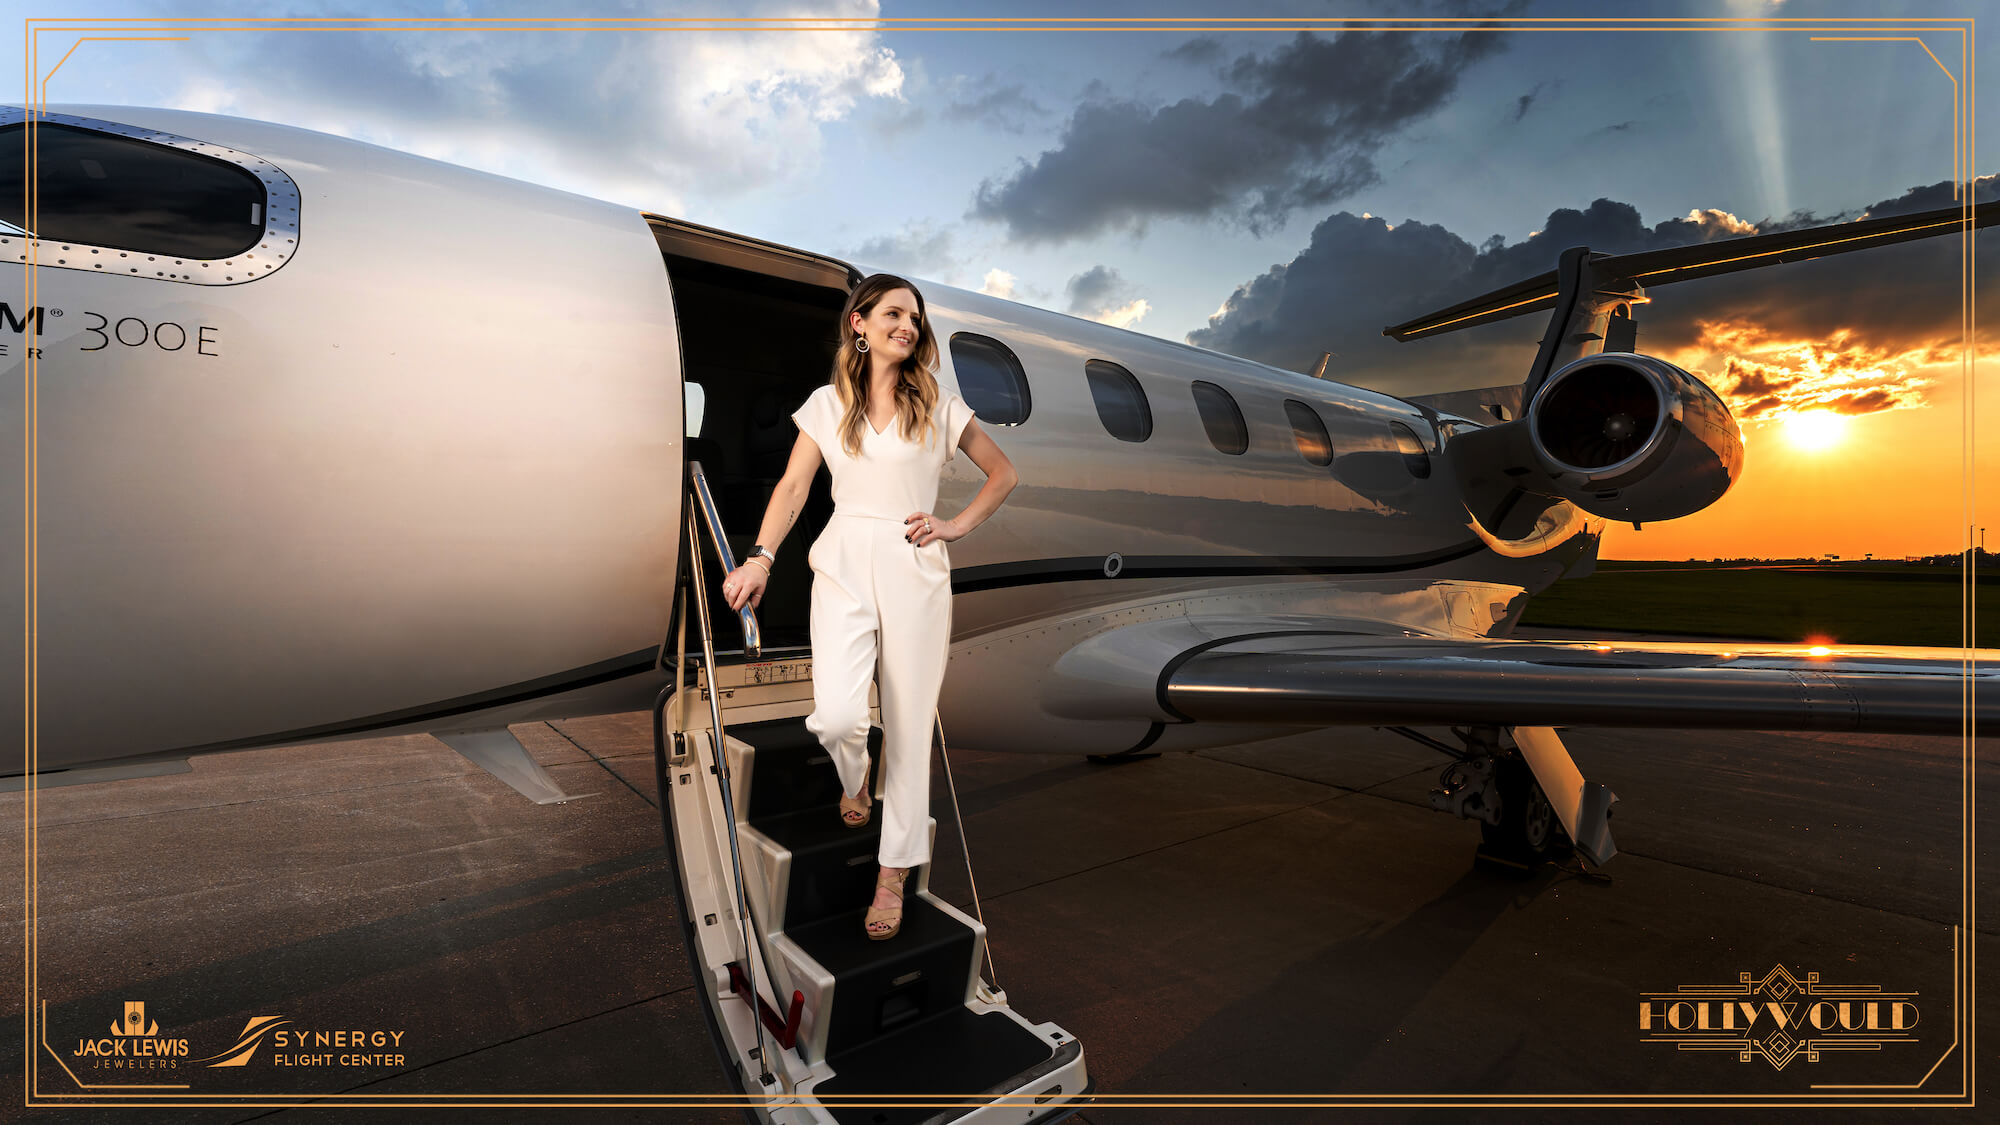 Young woman with long brown hair wearing a white pantsuit, and walking up airplane steps with the sunsetting behind her. She is wearing a bracelet, earrings and rings from the brand Lagos and their caviar collection.